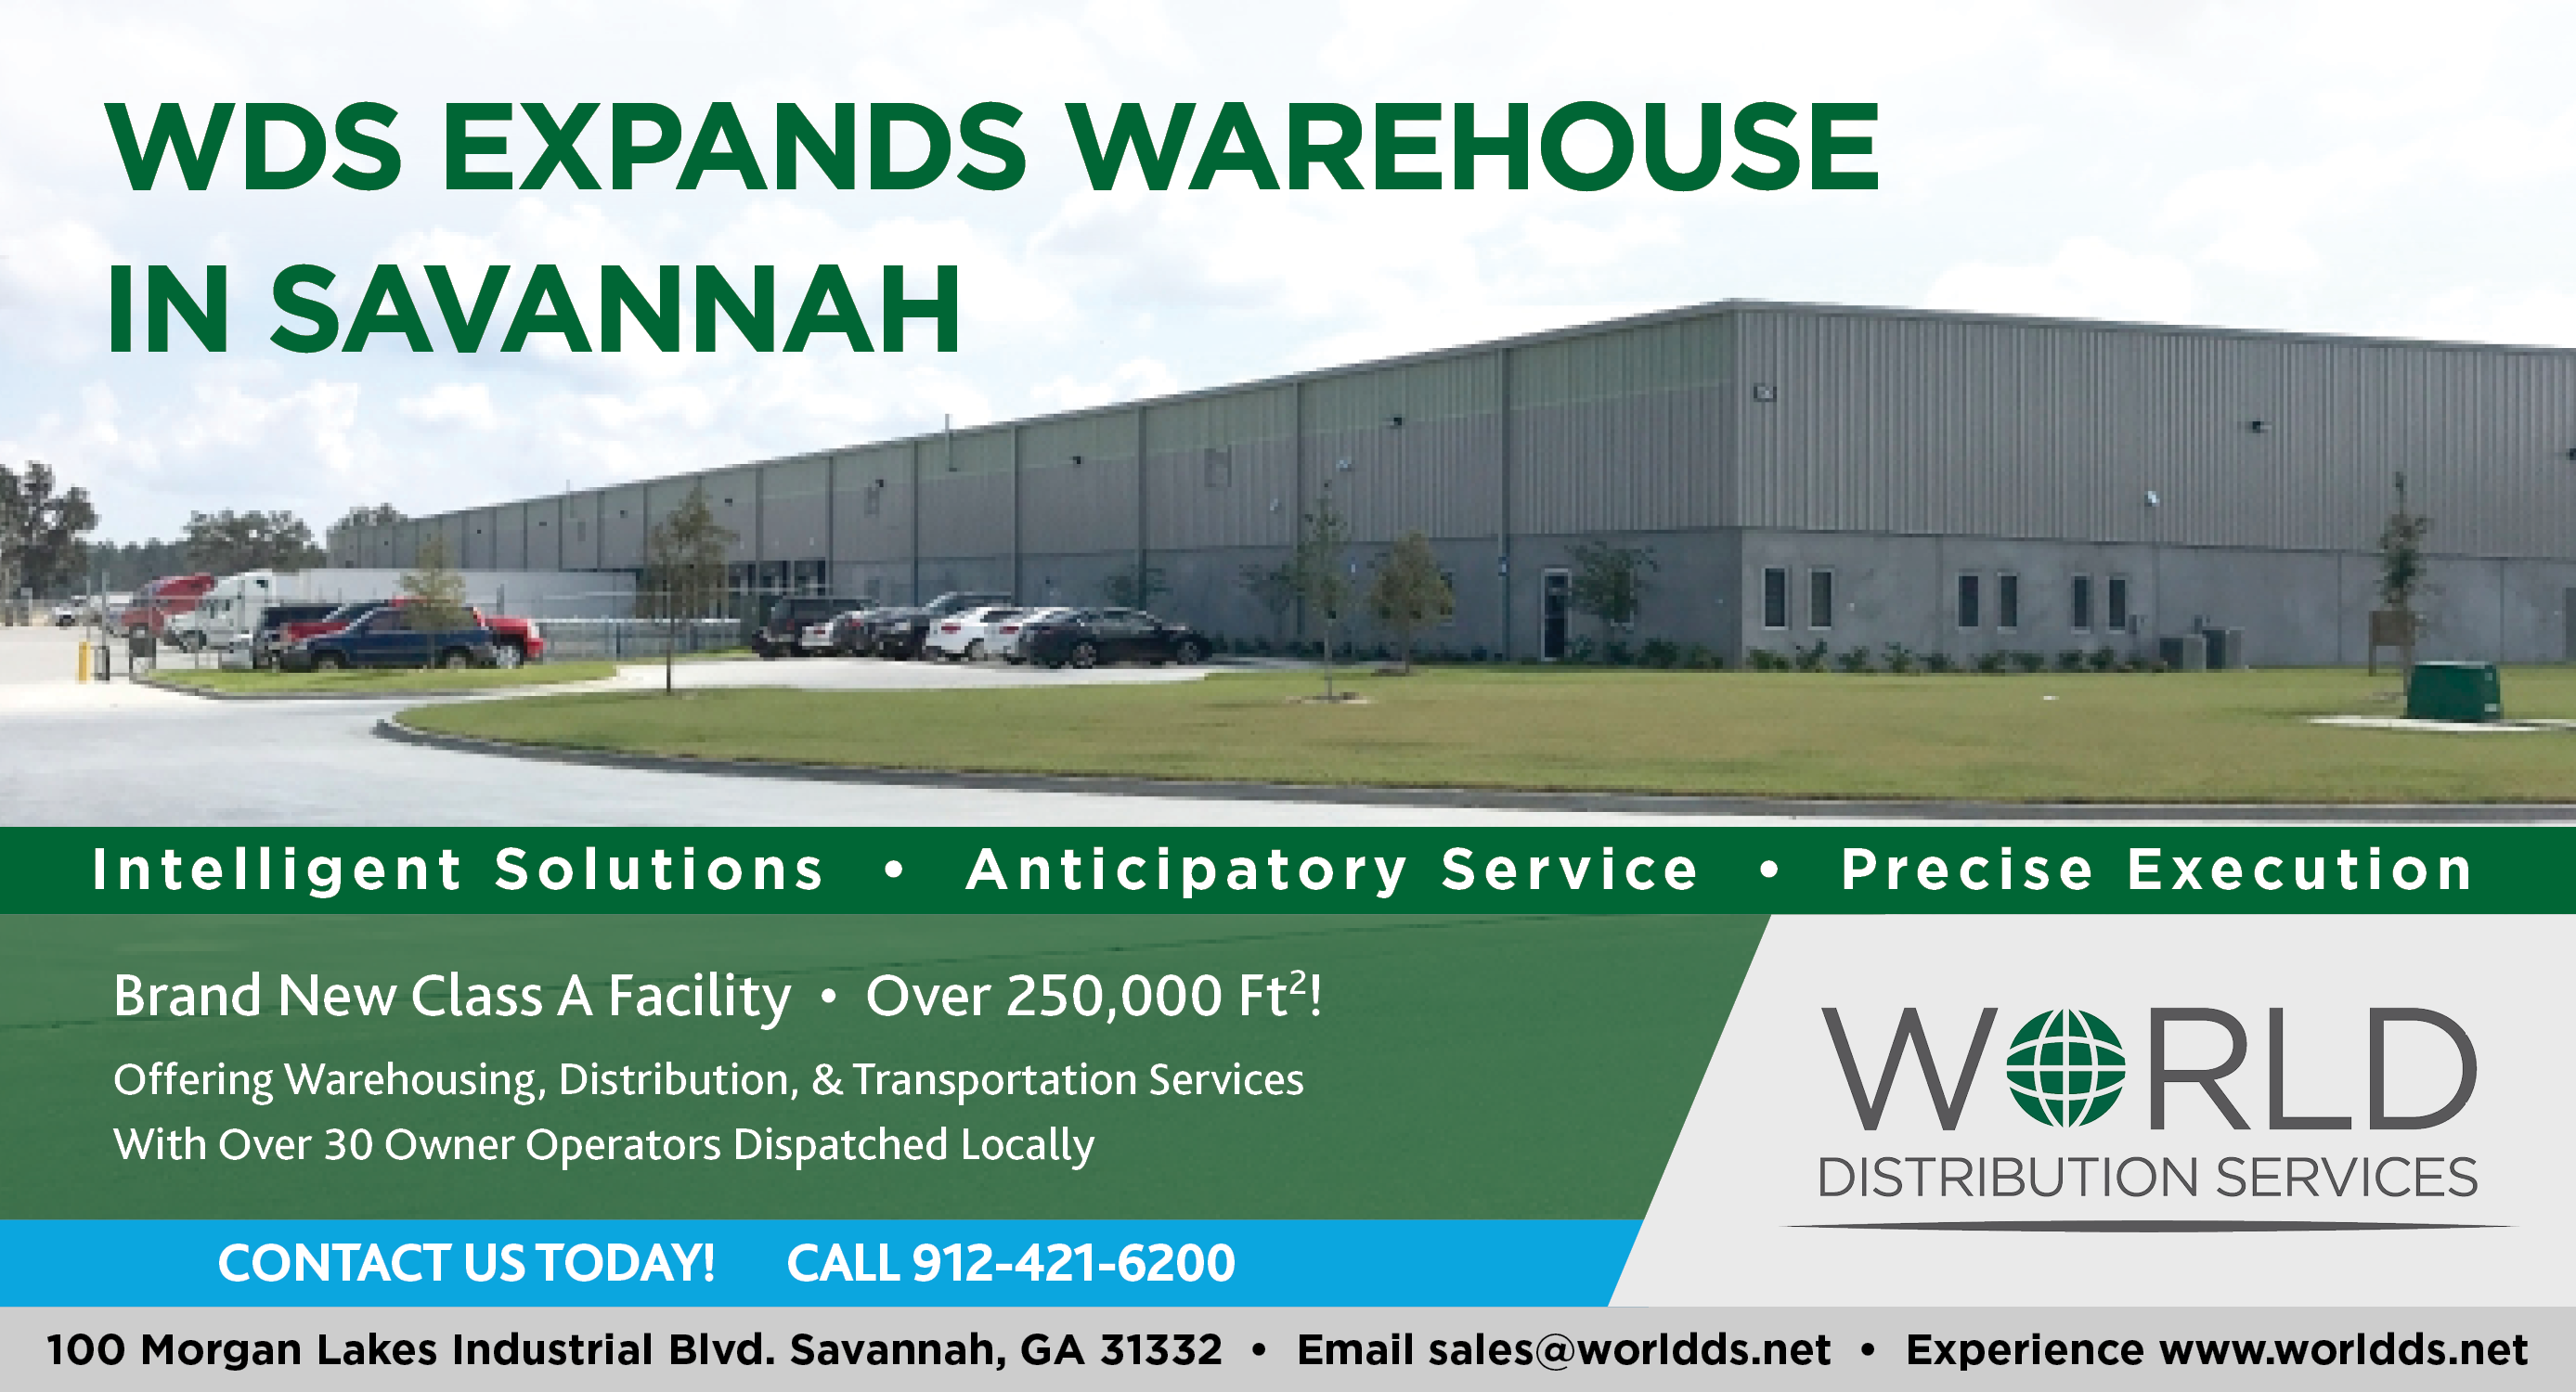 WDS, a UWL sister company, expands its Savannah warehouse